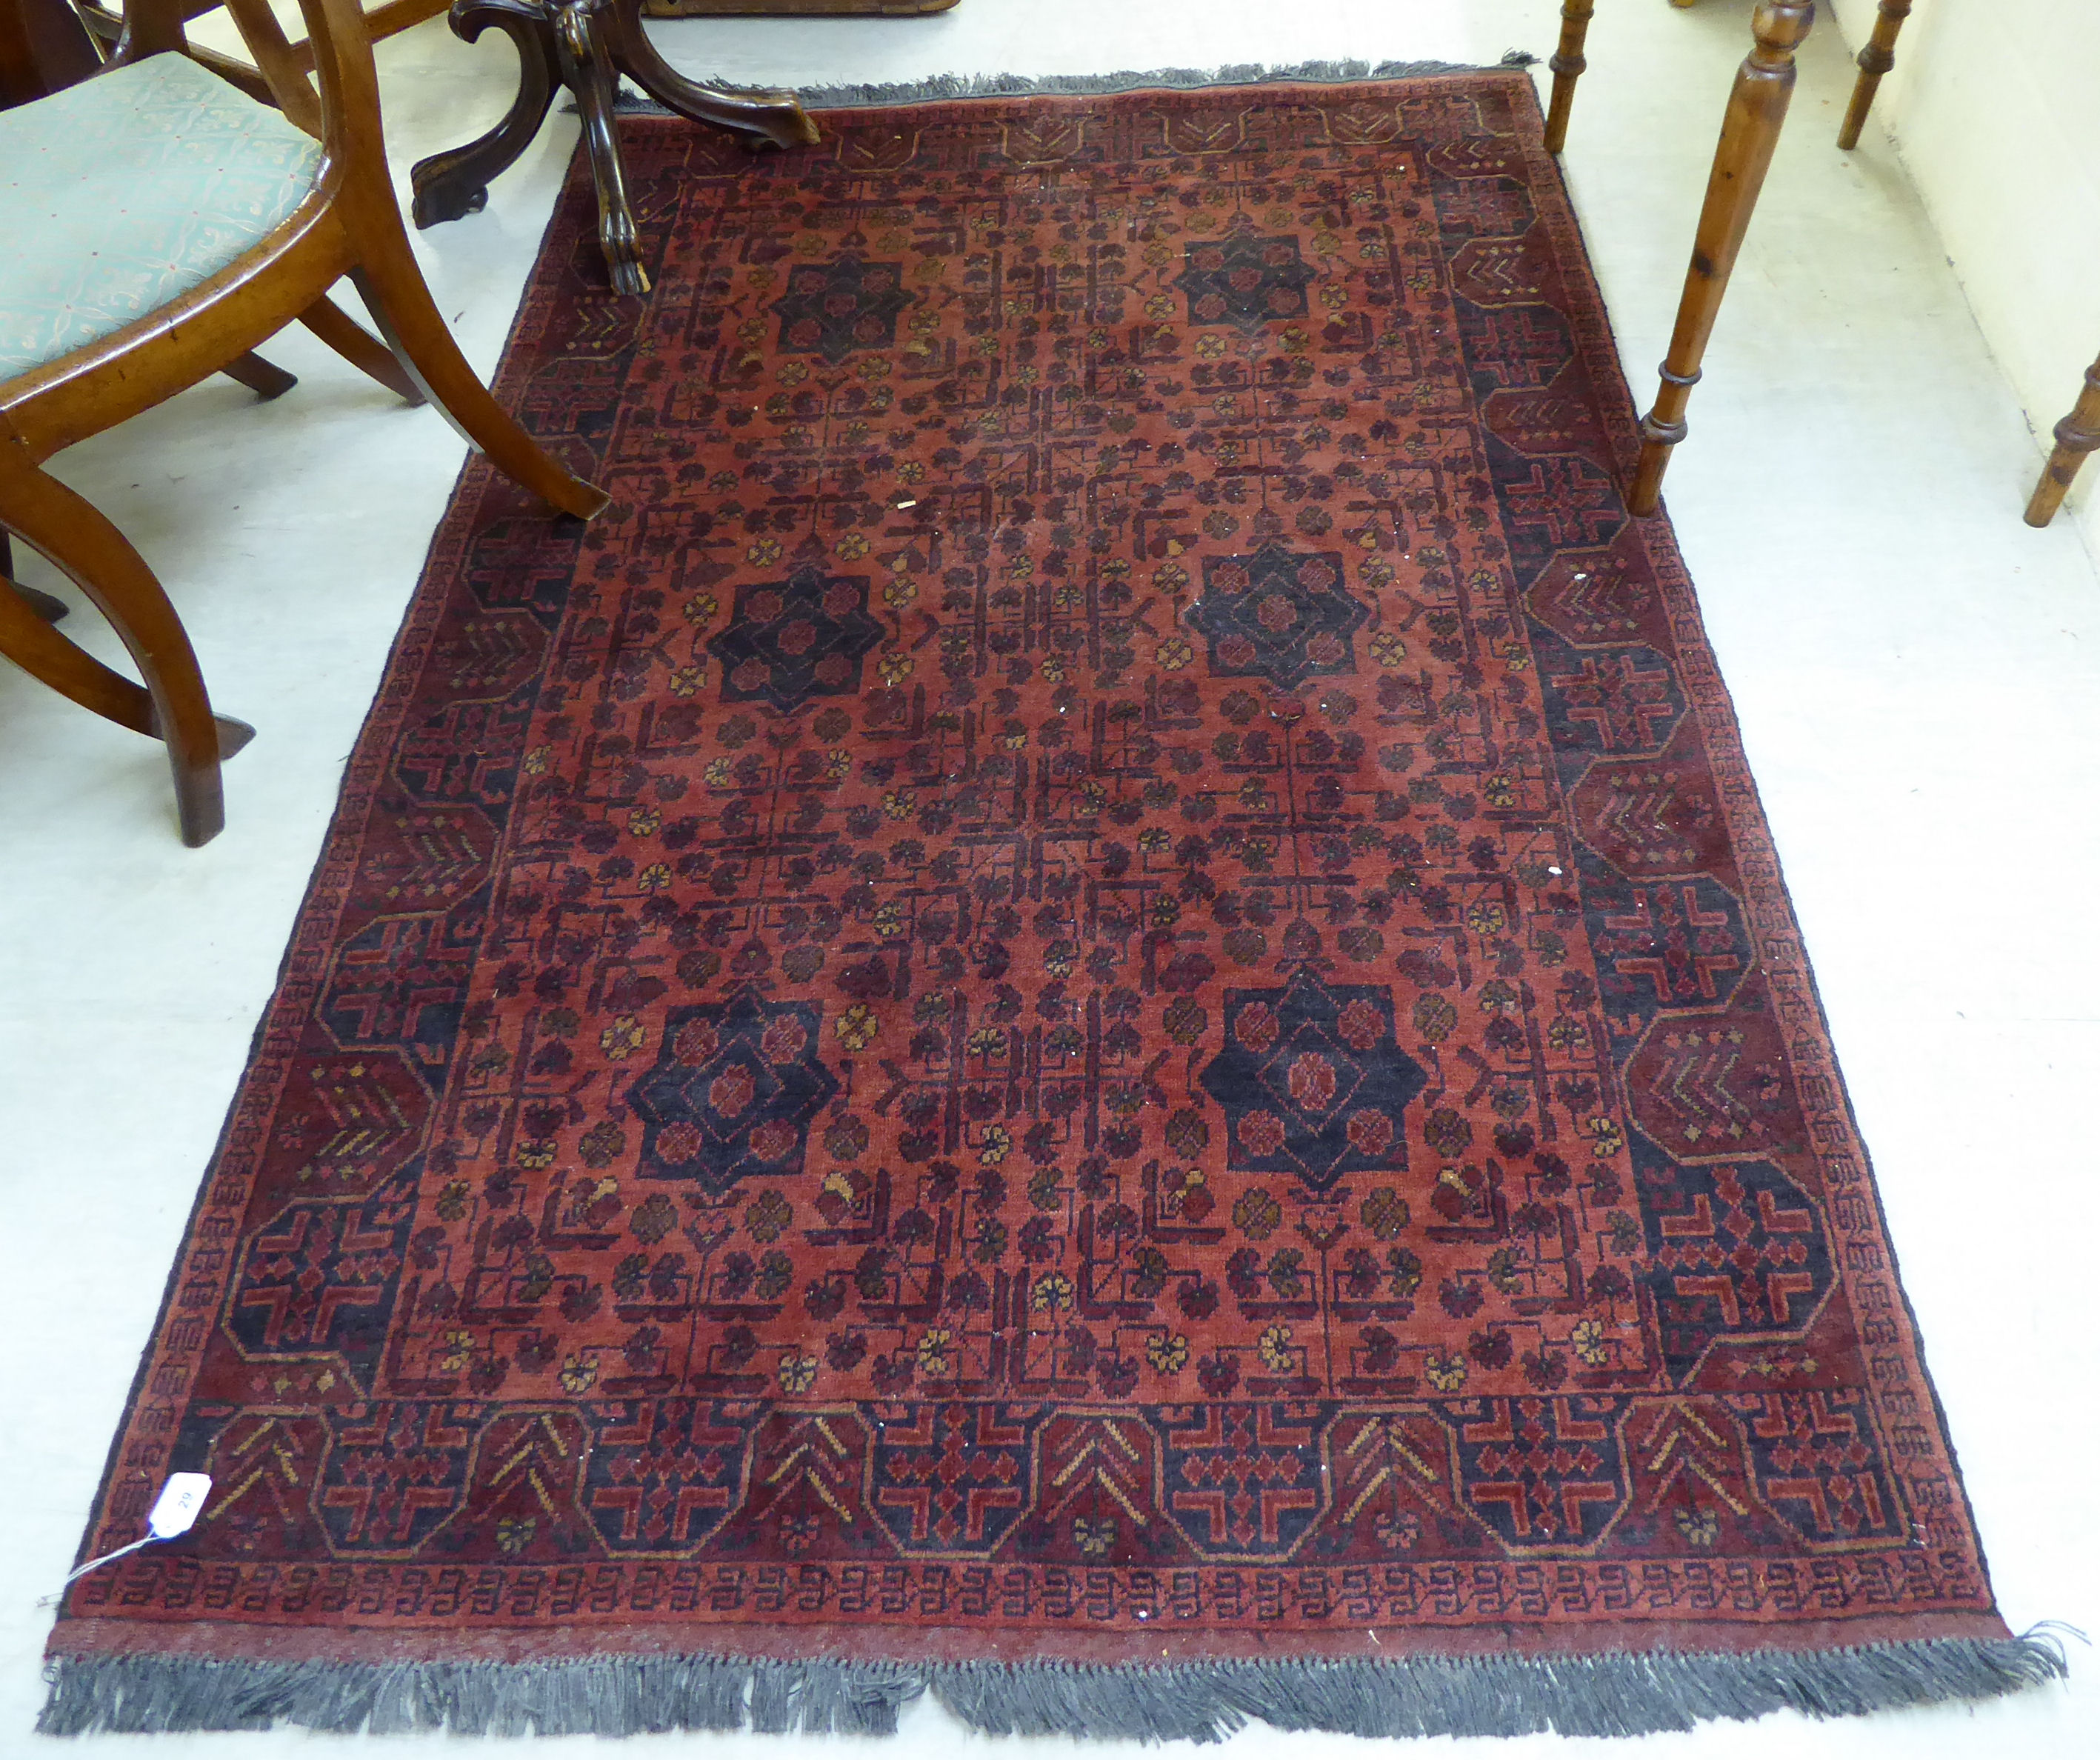 Lot 29 - A Persian design rug decorated with stylised floral designs on a red ground 50'' x 74'' BSR